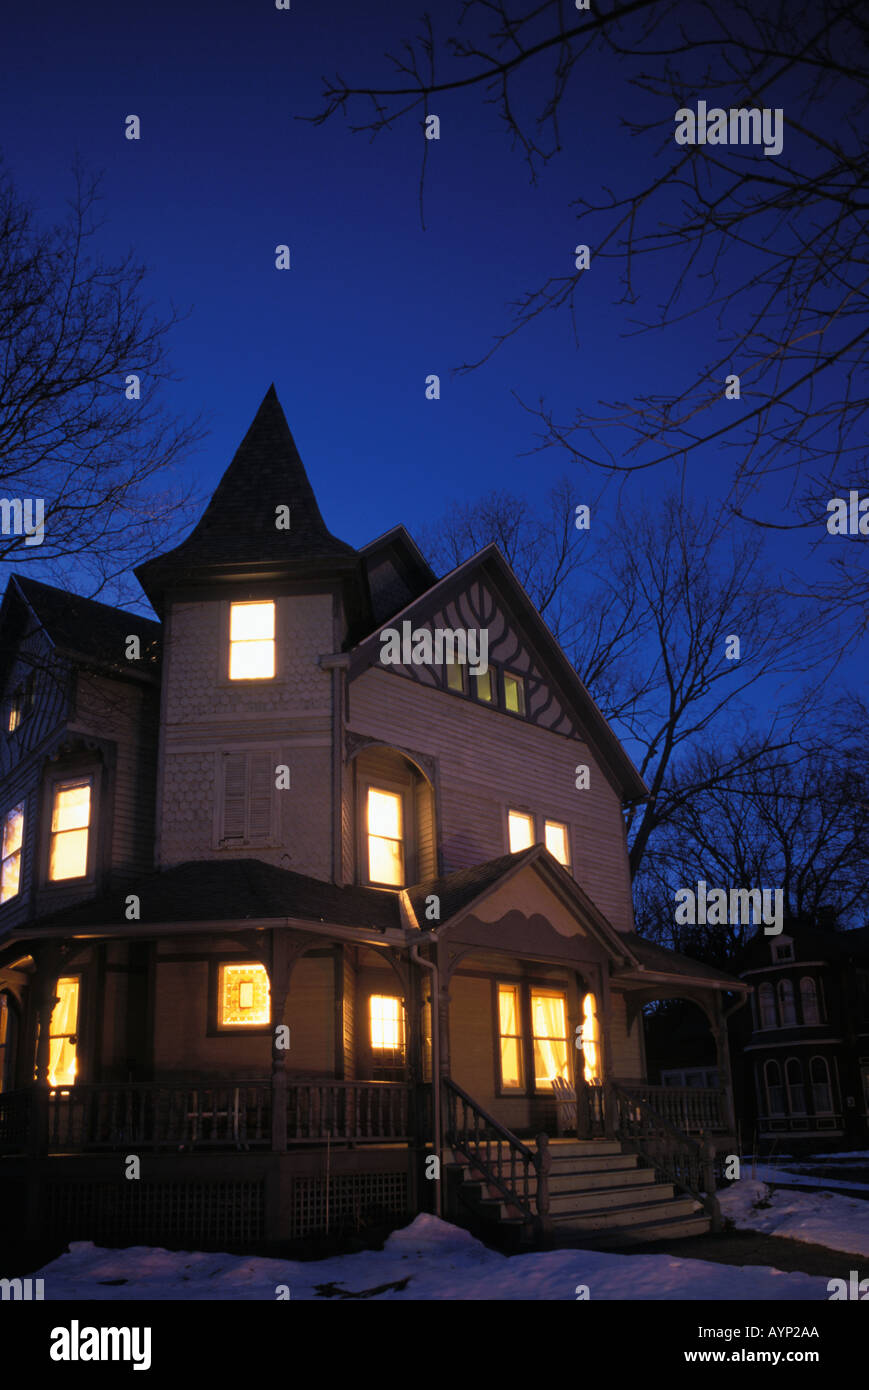 An Old Haunted Victorian House Lit up at Night - Stock Image